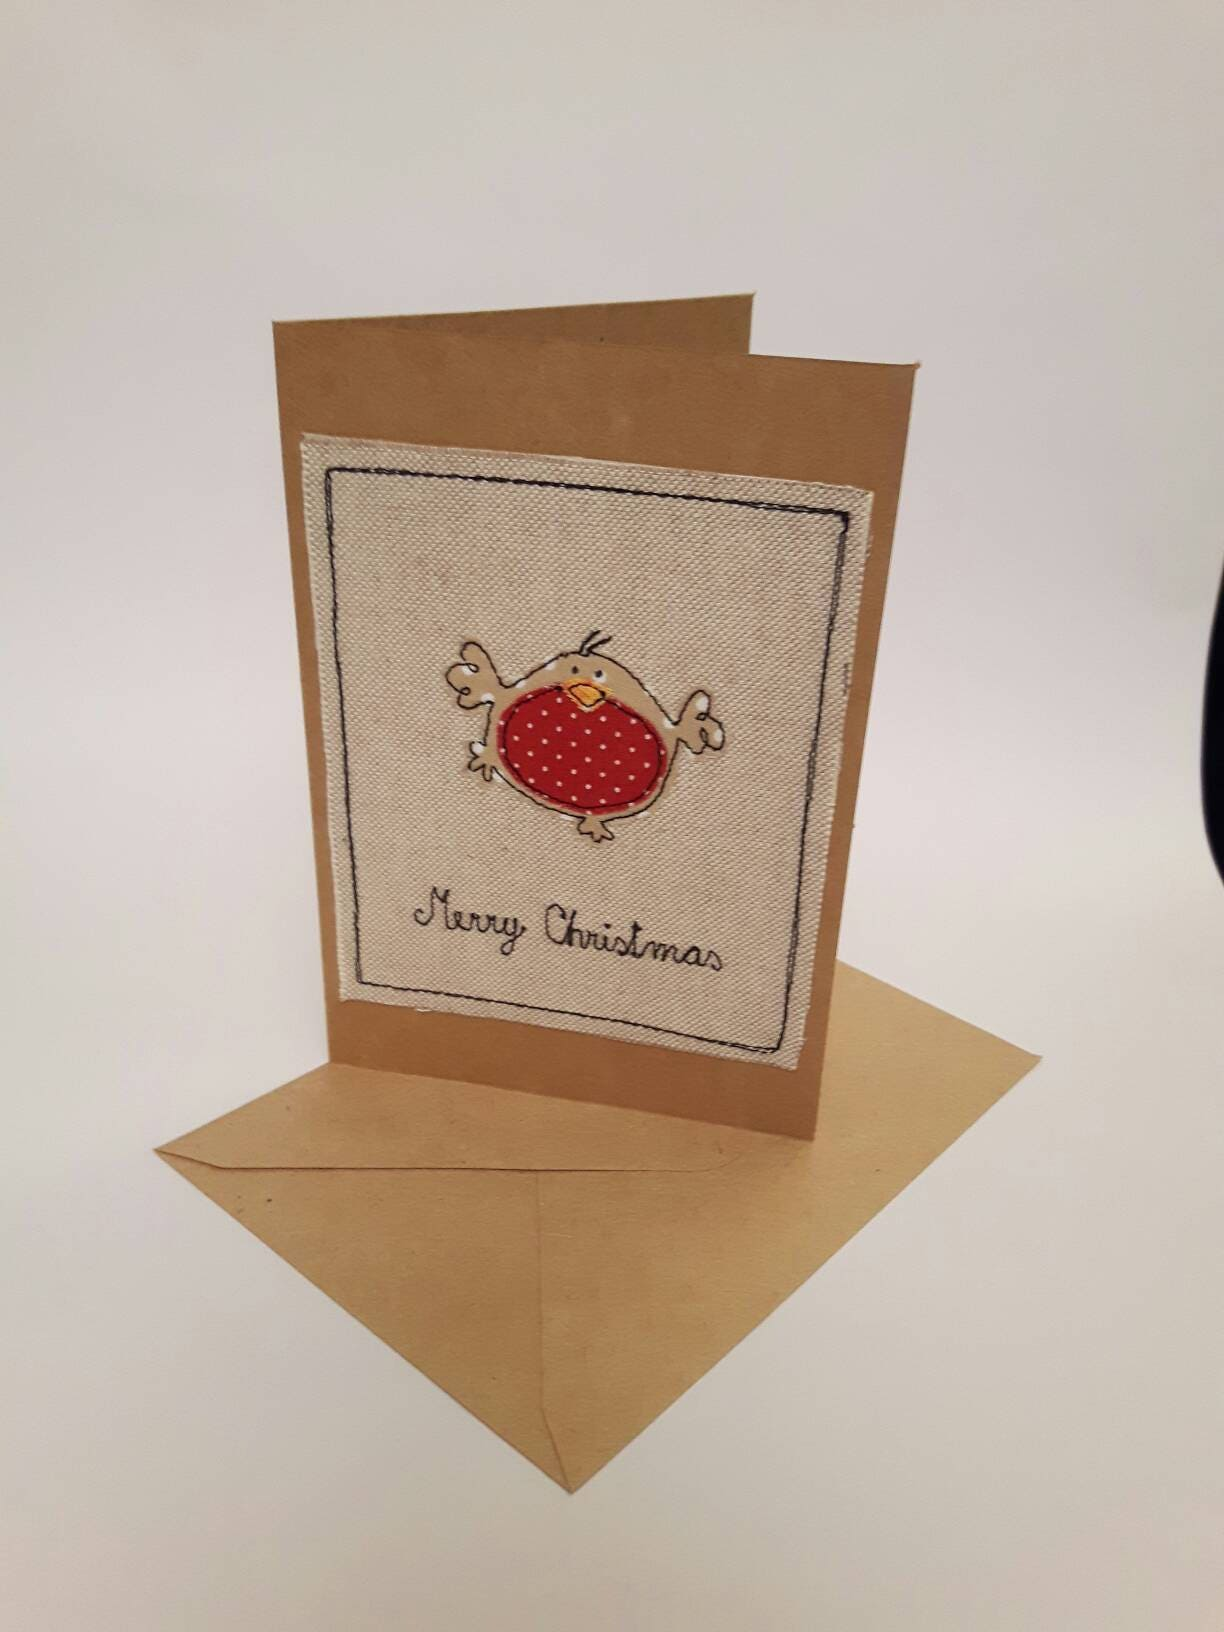 Greeting cards christmas robin fabric greeting cards christmas card snowman applique robin christmas merry m4hsunfo